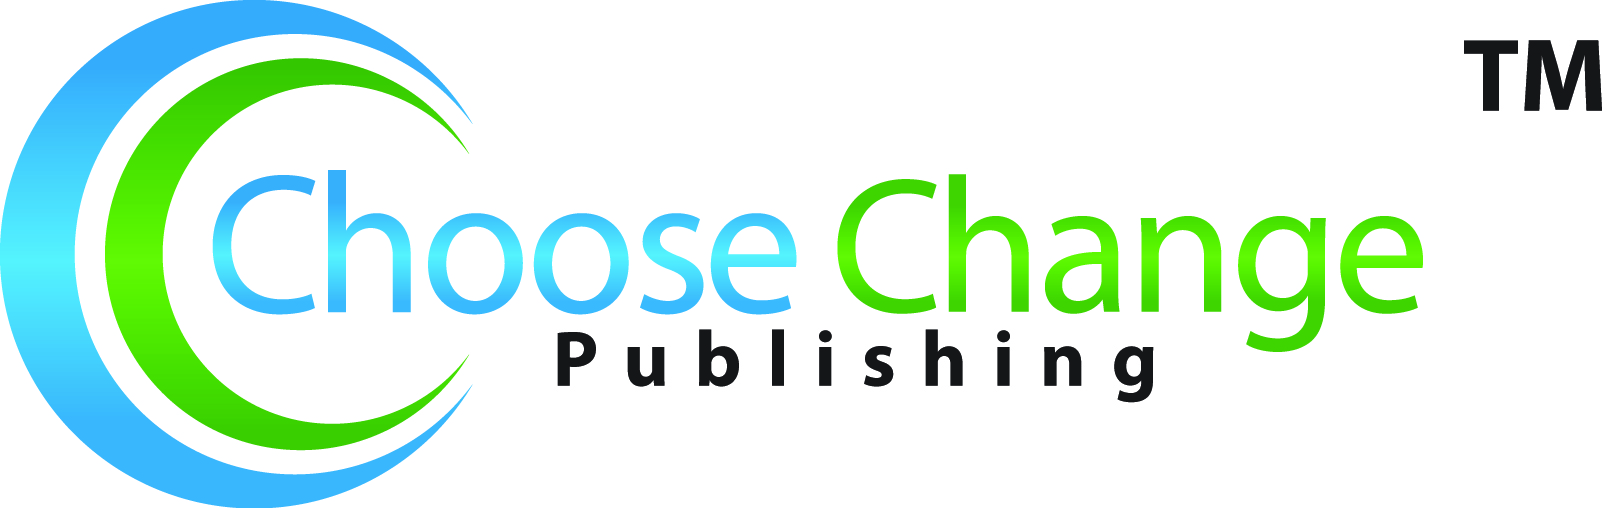 choose-change-logo